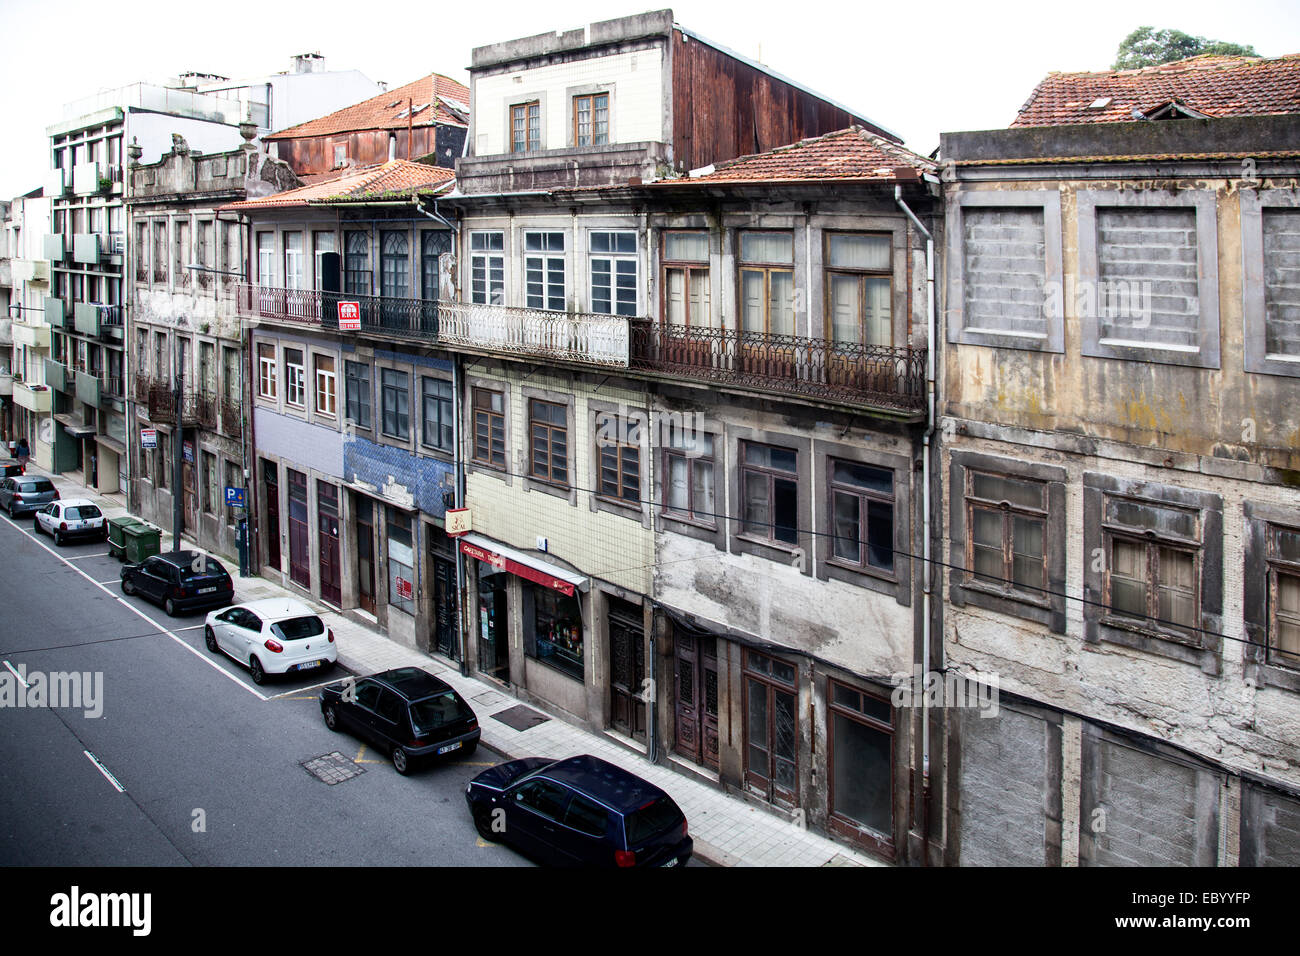 Neglected abandon buildings in Porto, Portugal. - Stock Image